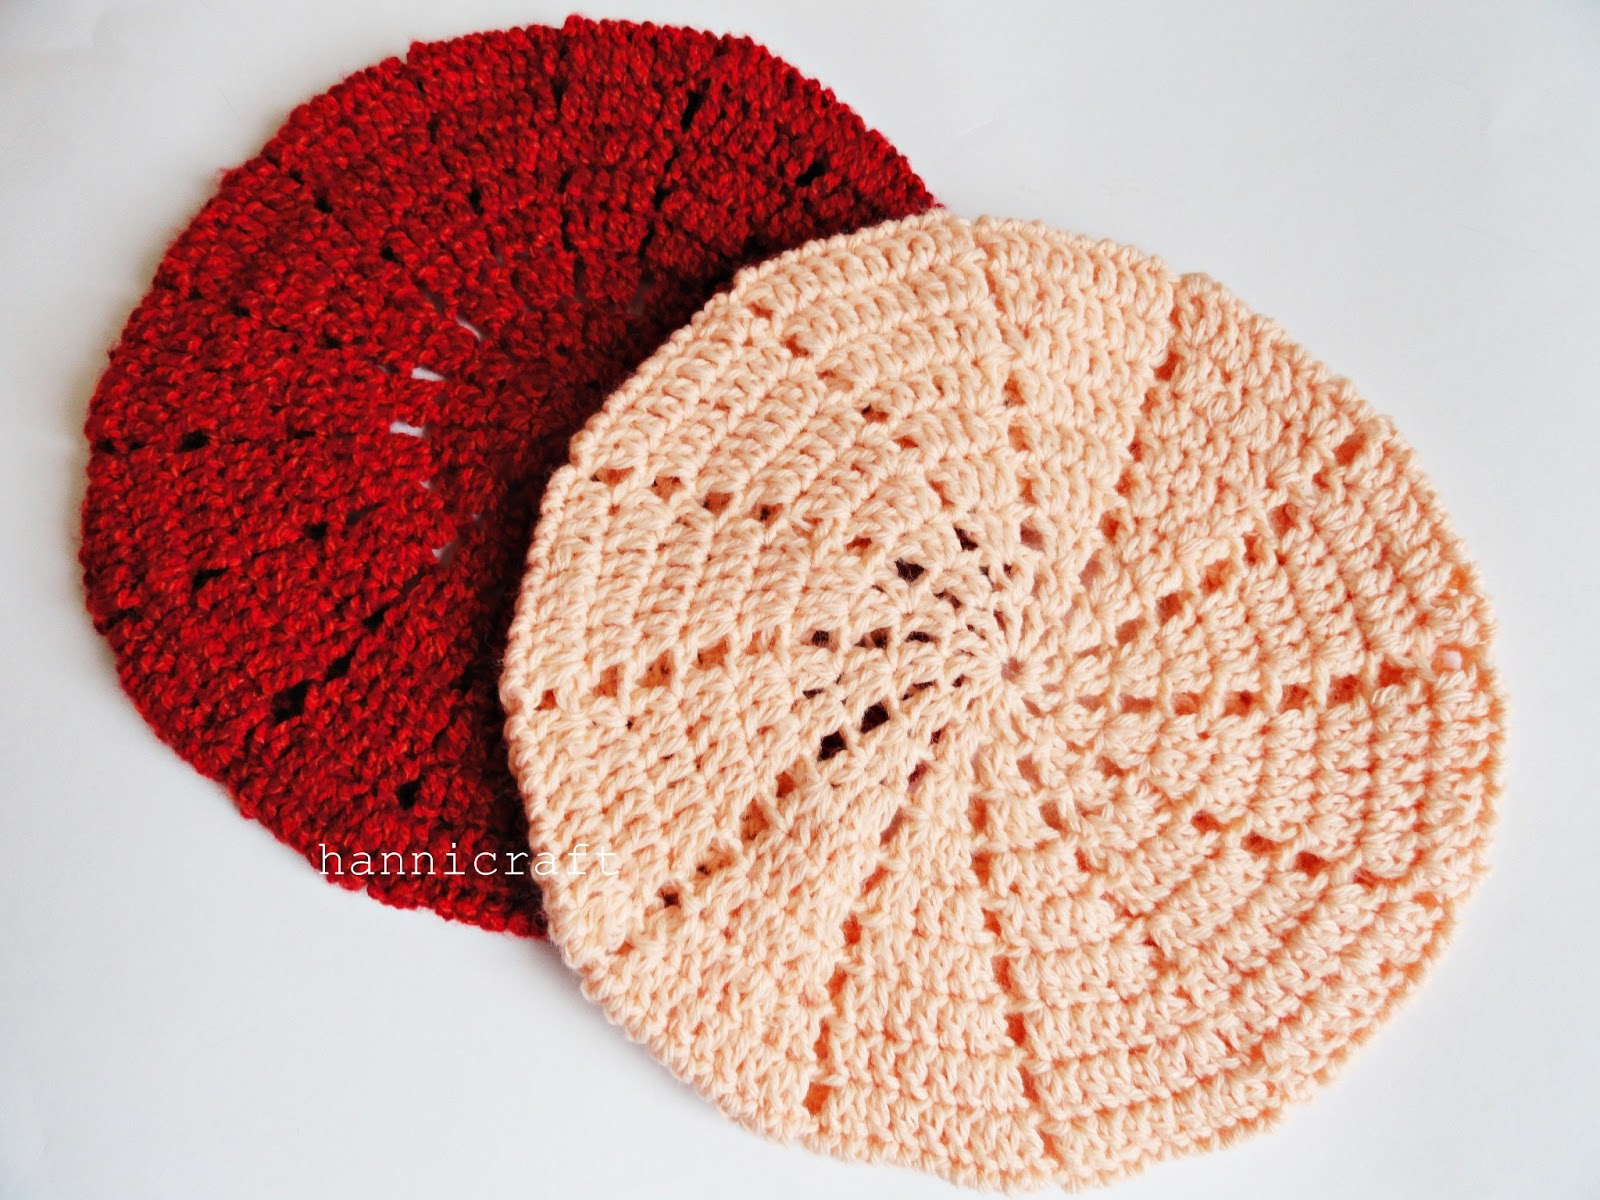 Free Knitting Patterns Berets Easy : Simple beret crochet pattern